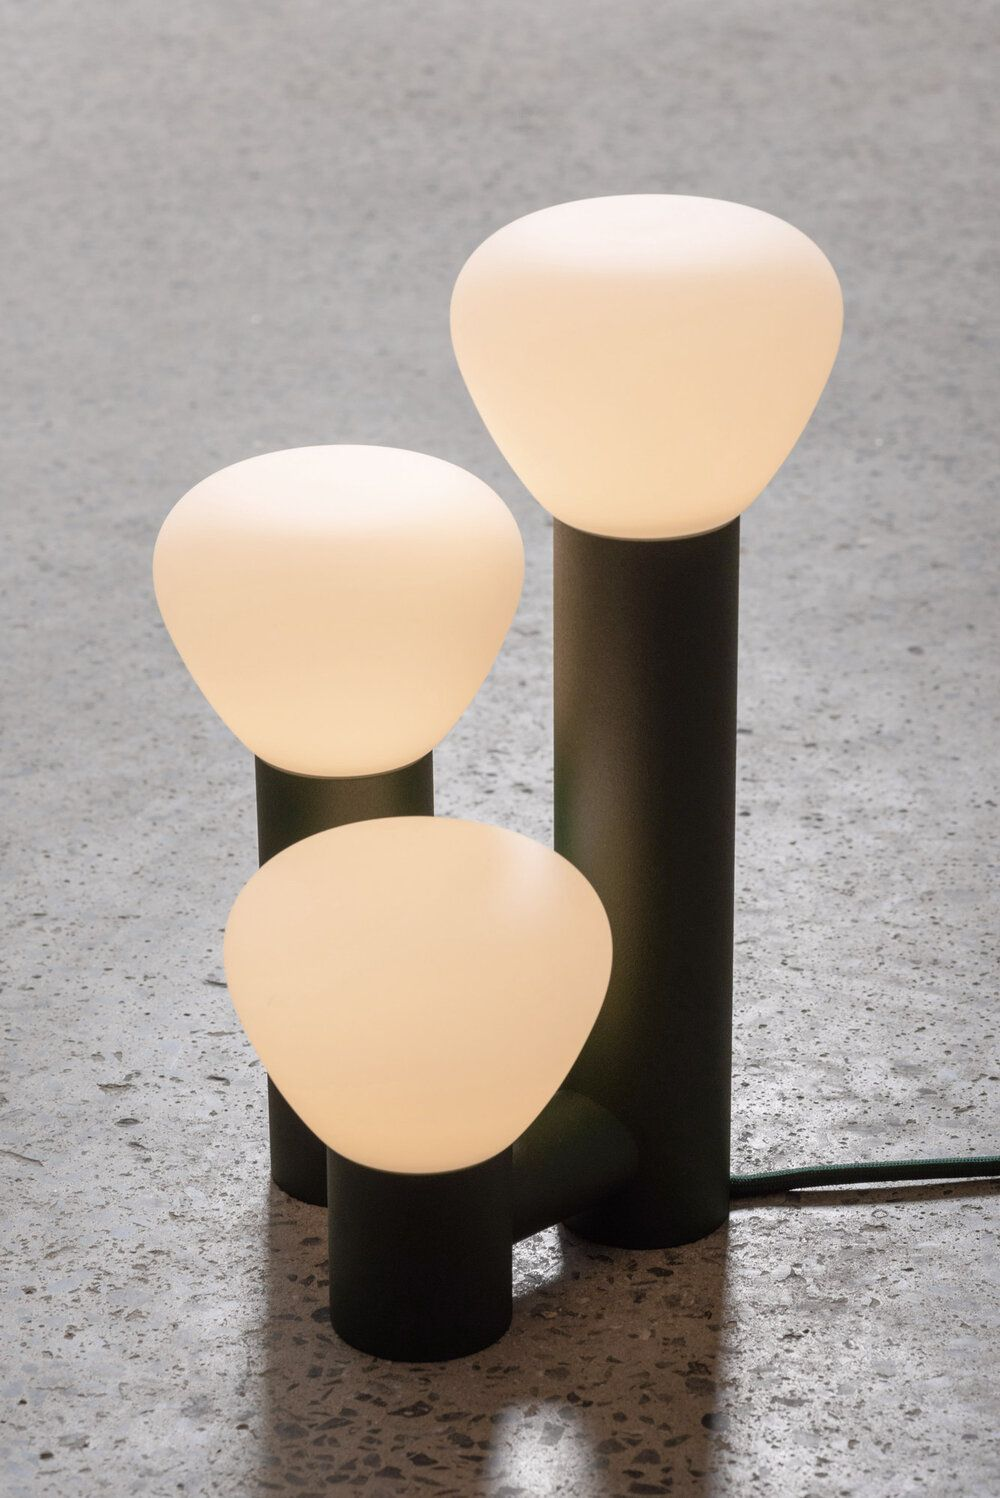 The Parc 06 Table Lamp Gestalt New York Glass Diffuser Lighting Collections Lamp